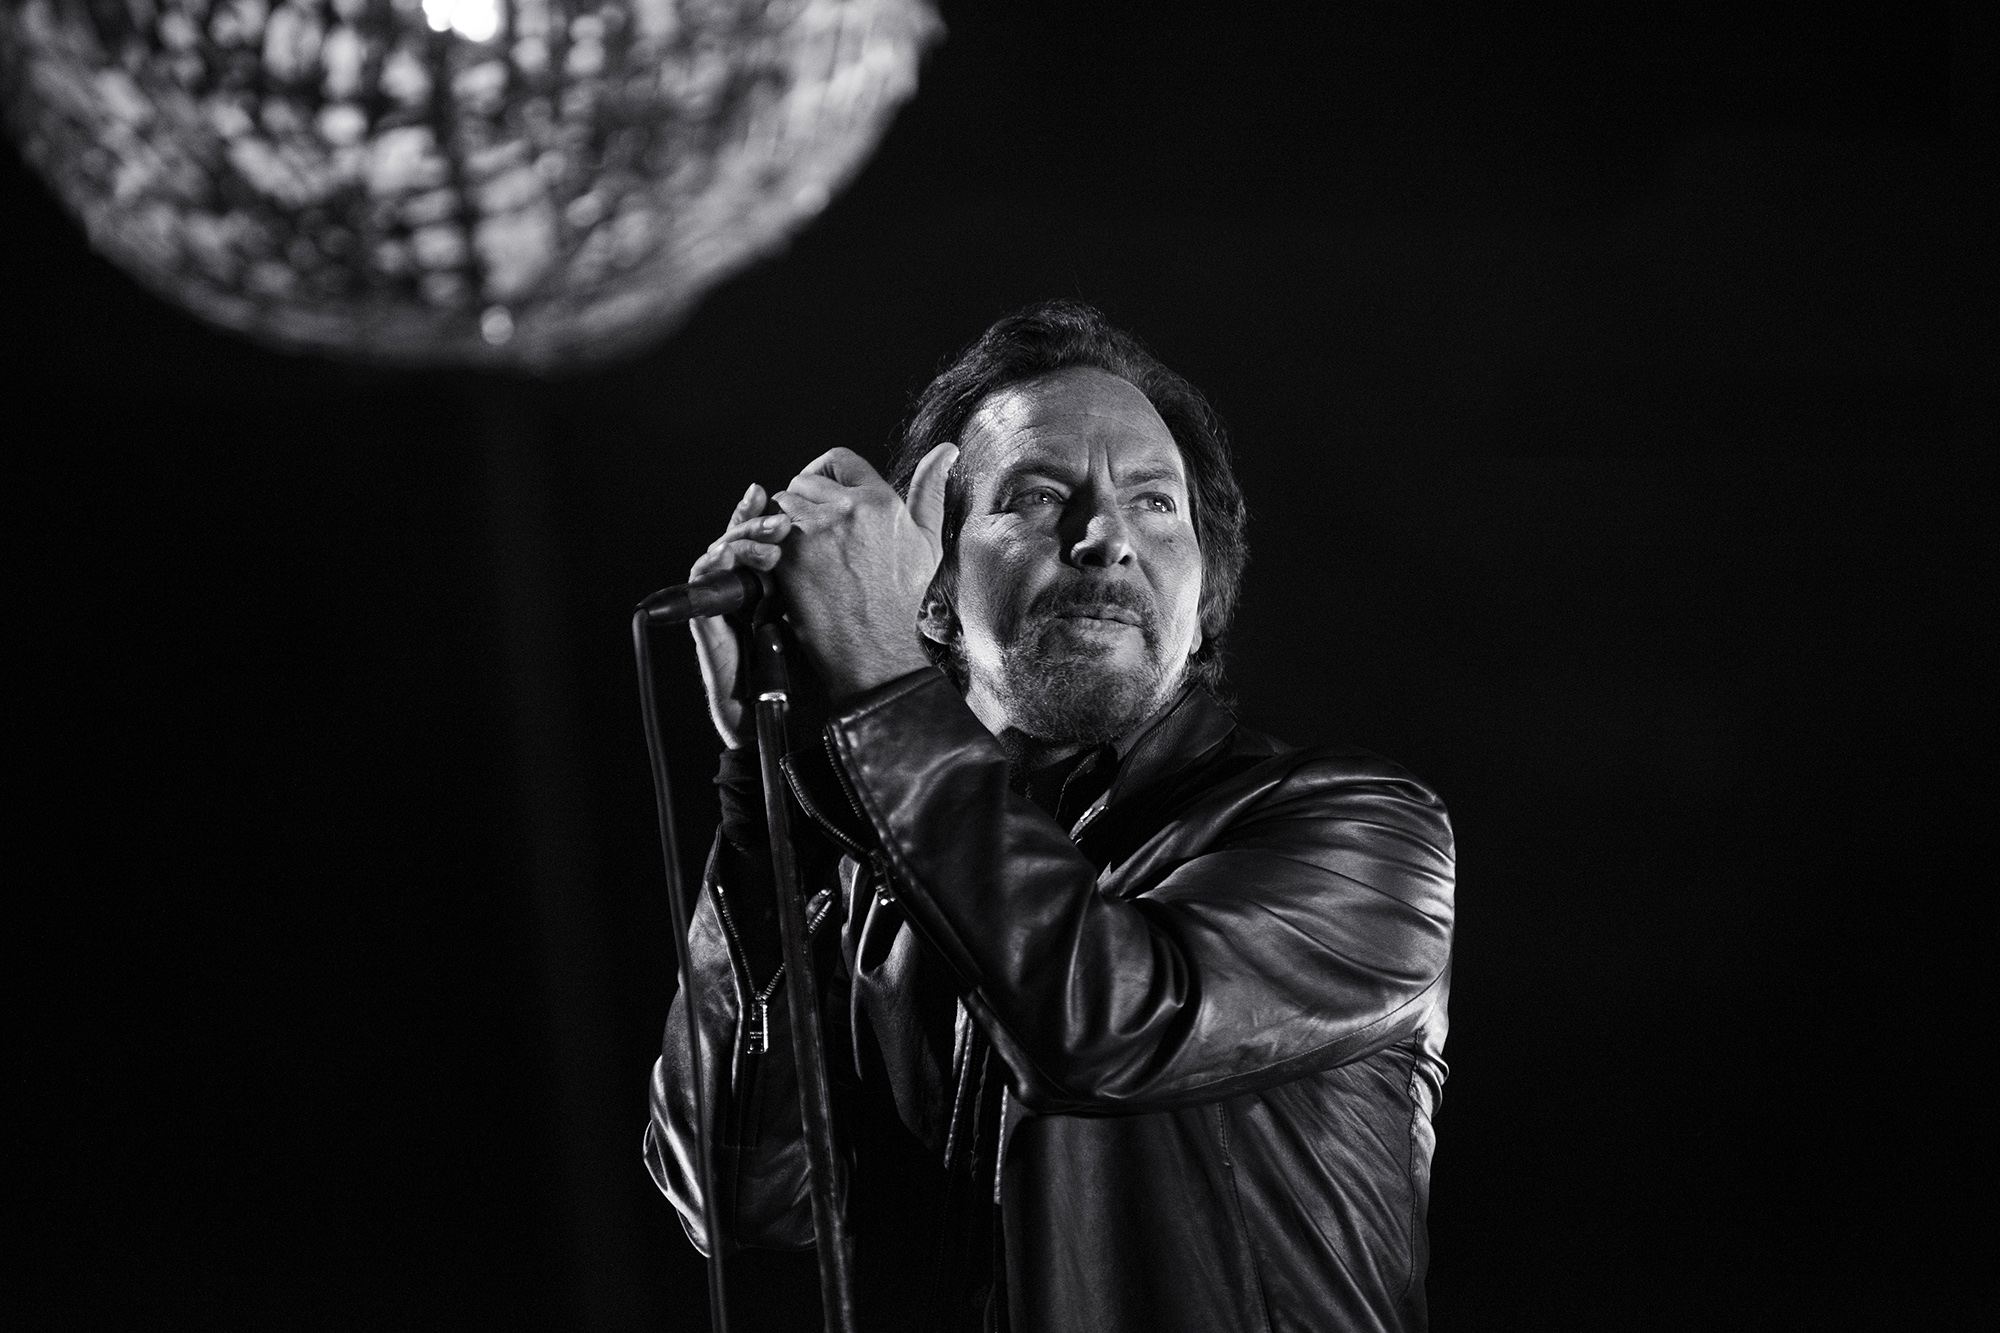 Buon Compleanno Mr. Vedder